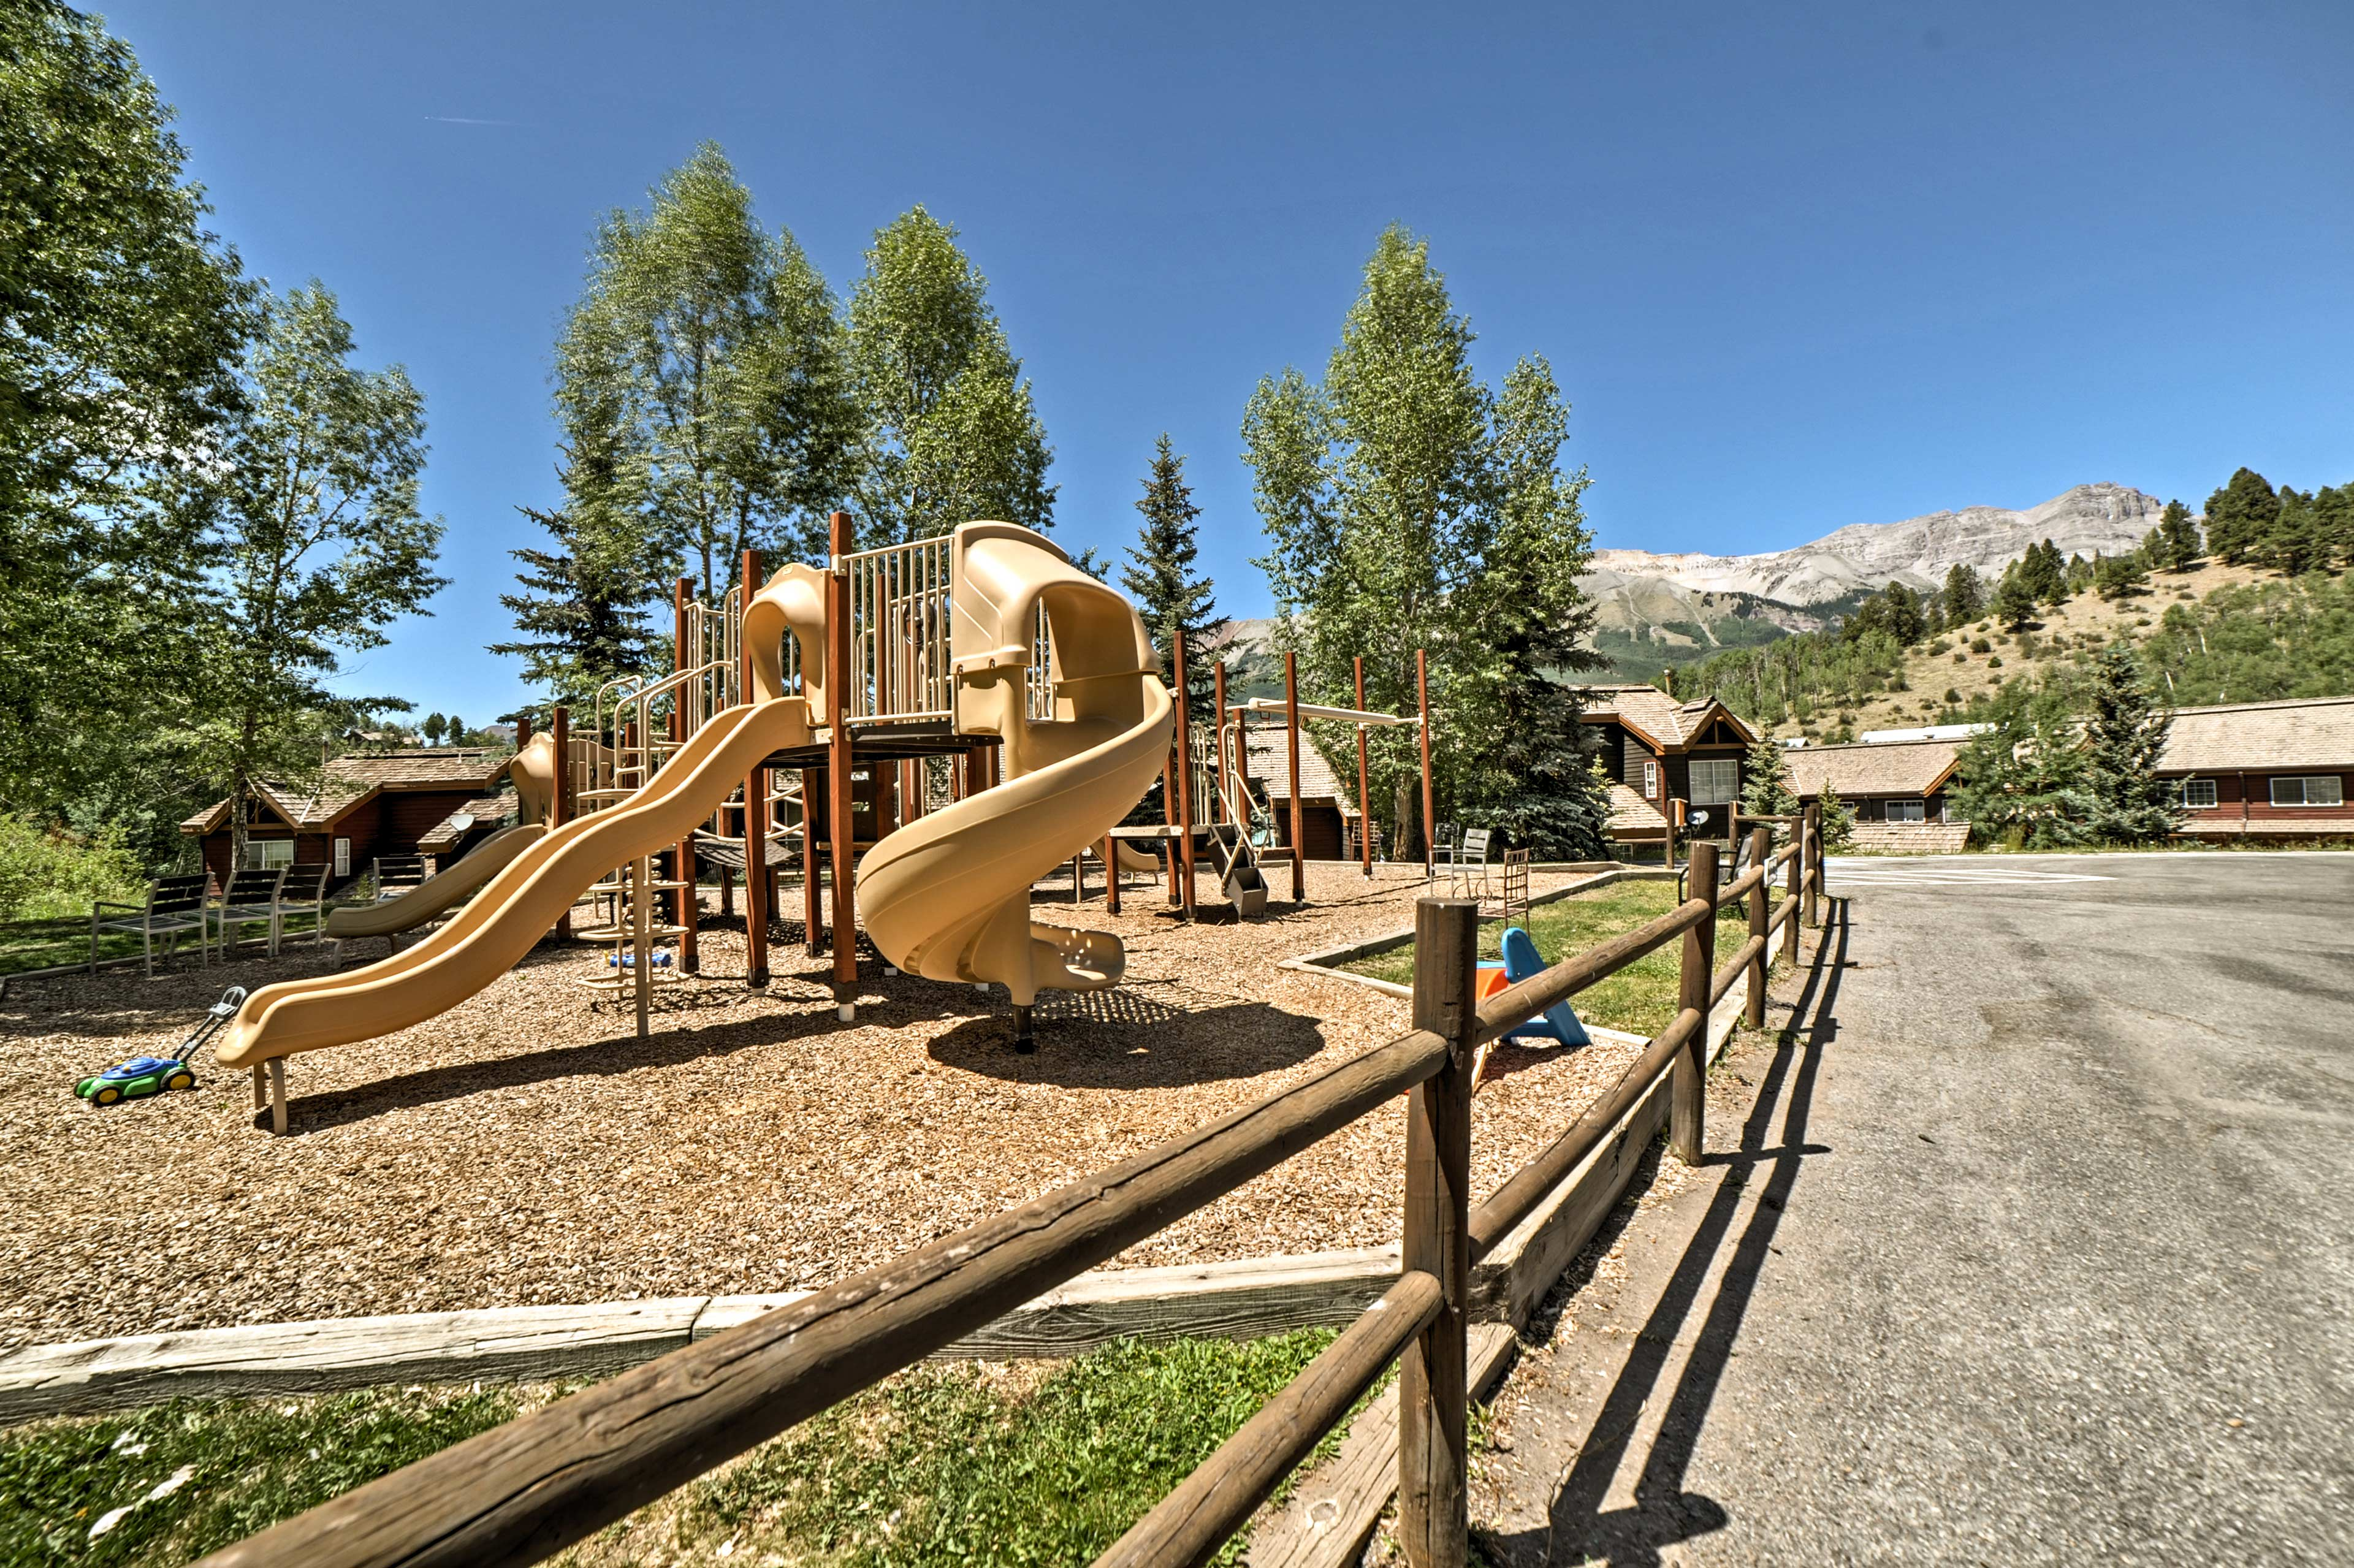 Let the little ones blow off some steam while you take in the views!